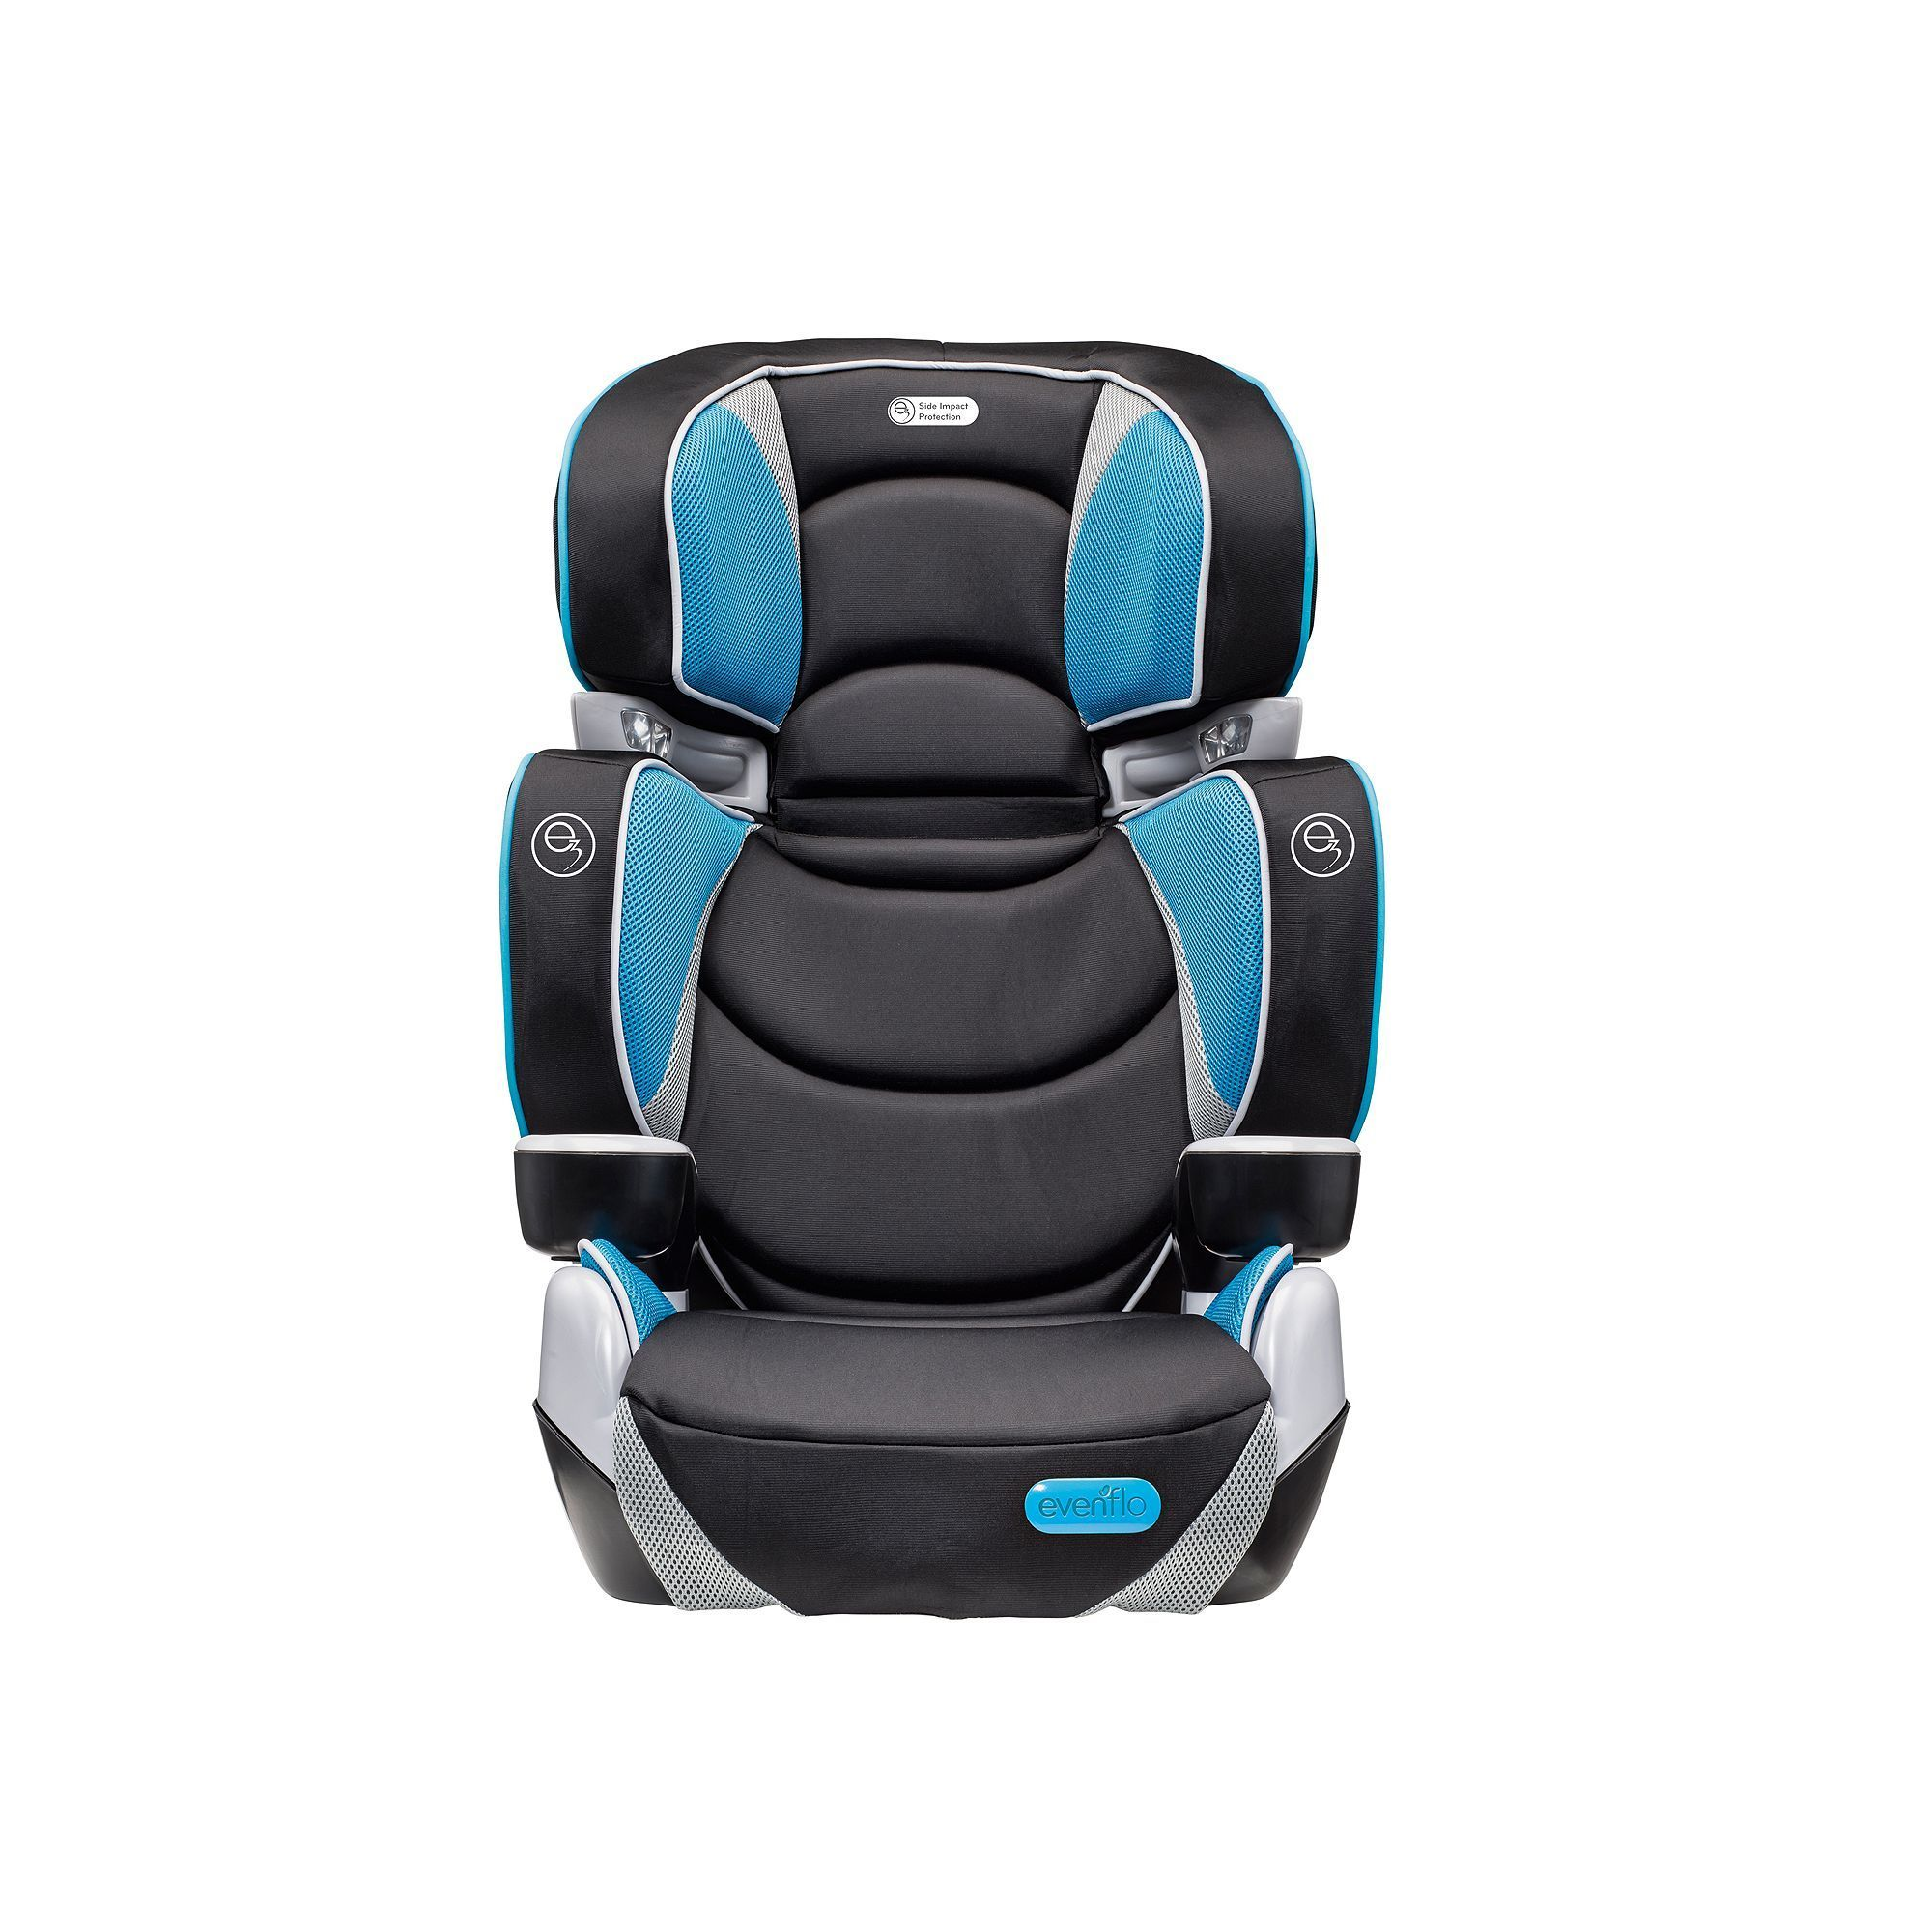 Evenflo RightFit Booster Car Seat Blue